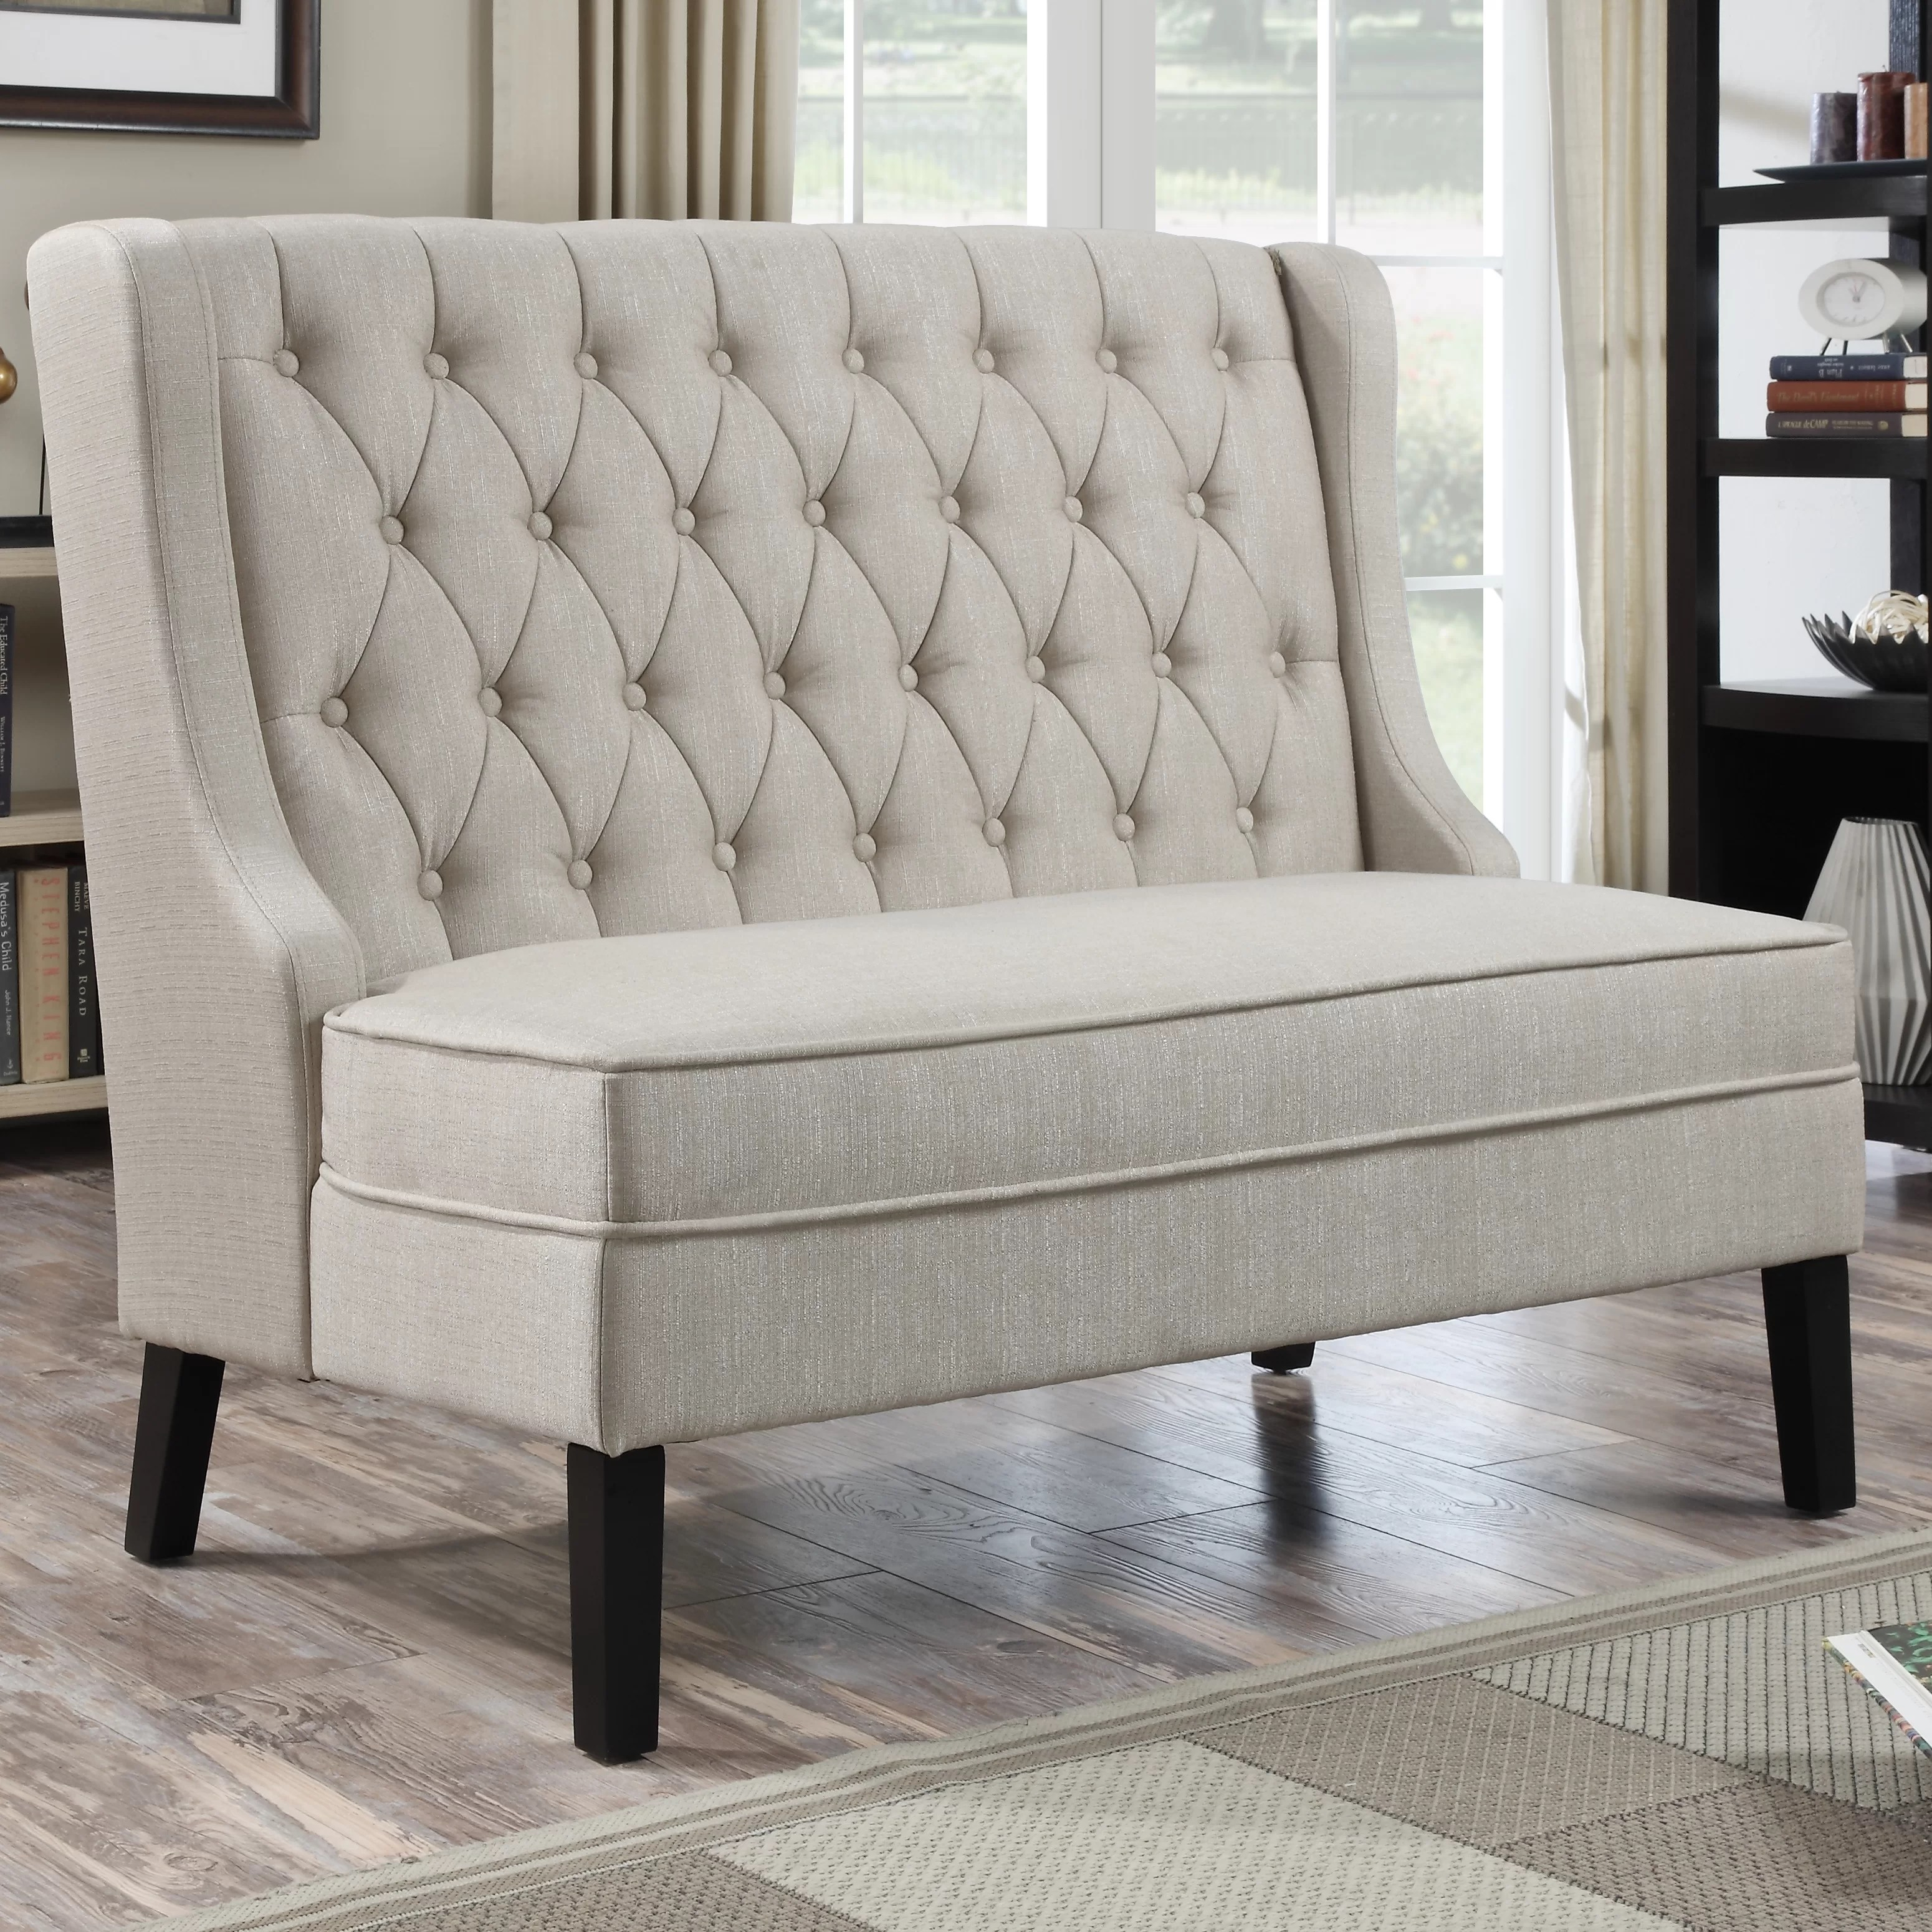 Darby Home Co Curran Upholstered Bench Amp Reviews Wayfair